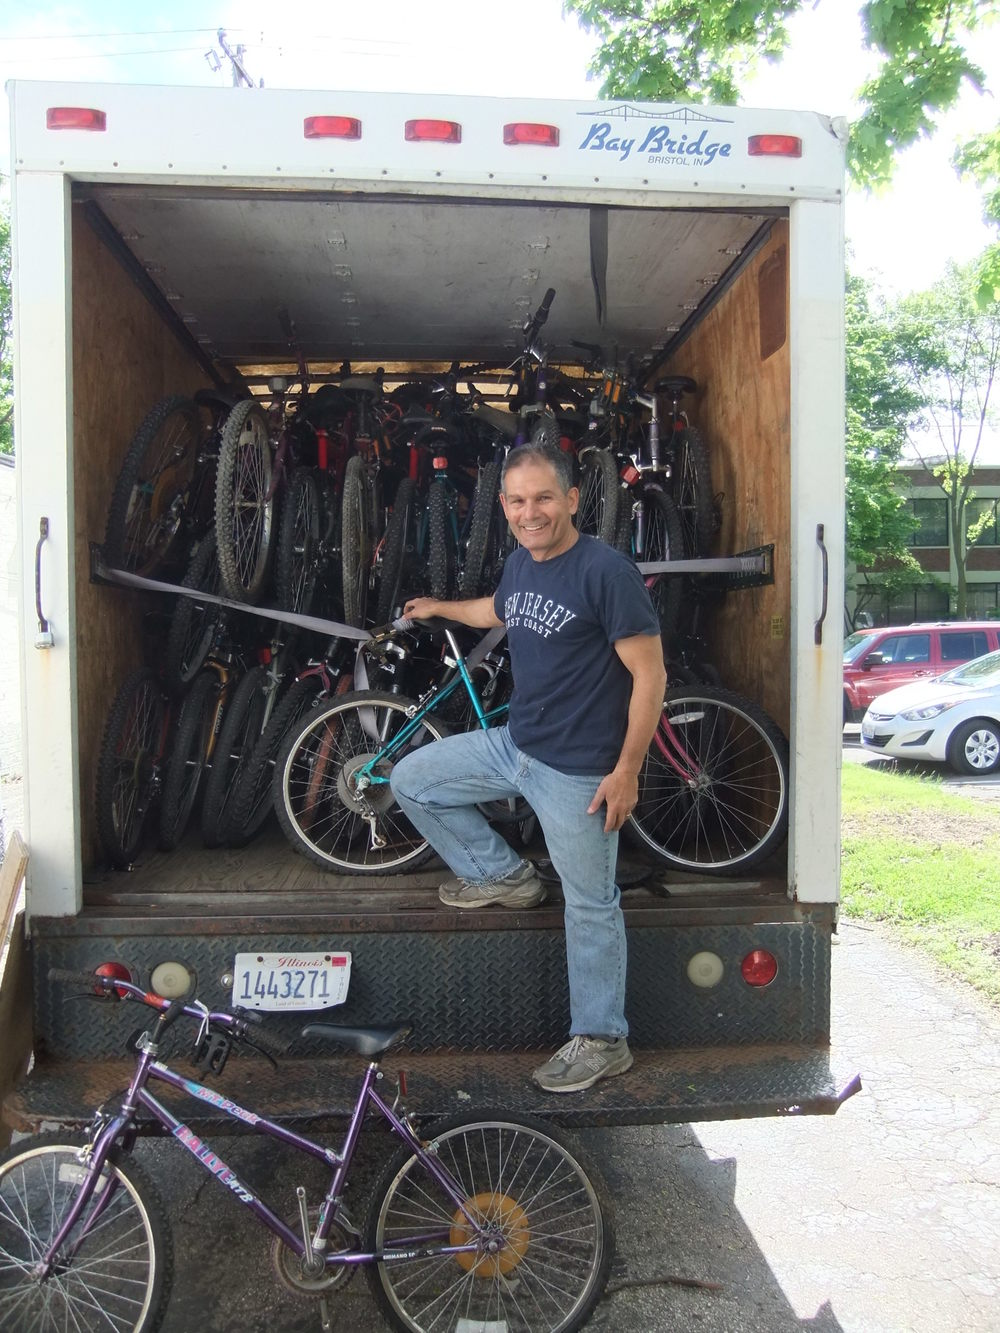 At times Wheels for Winners has a surplus of bikes in our little shop. Luckily, we recently had the opportunity to partner with Working Bikes, a non-profit in Chicago that provides bikes to global organizations in need of bikes. This load was on its way to Botswana as part of a larger shipment of 400 bikes.